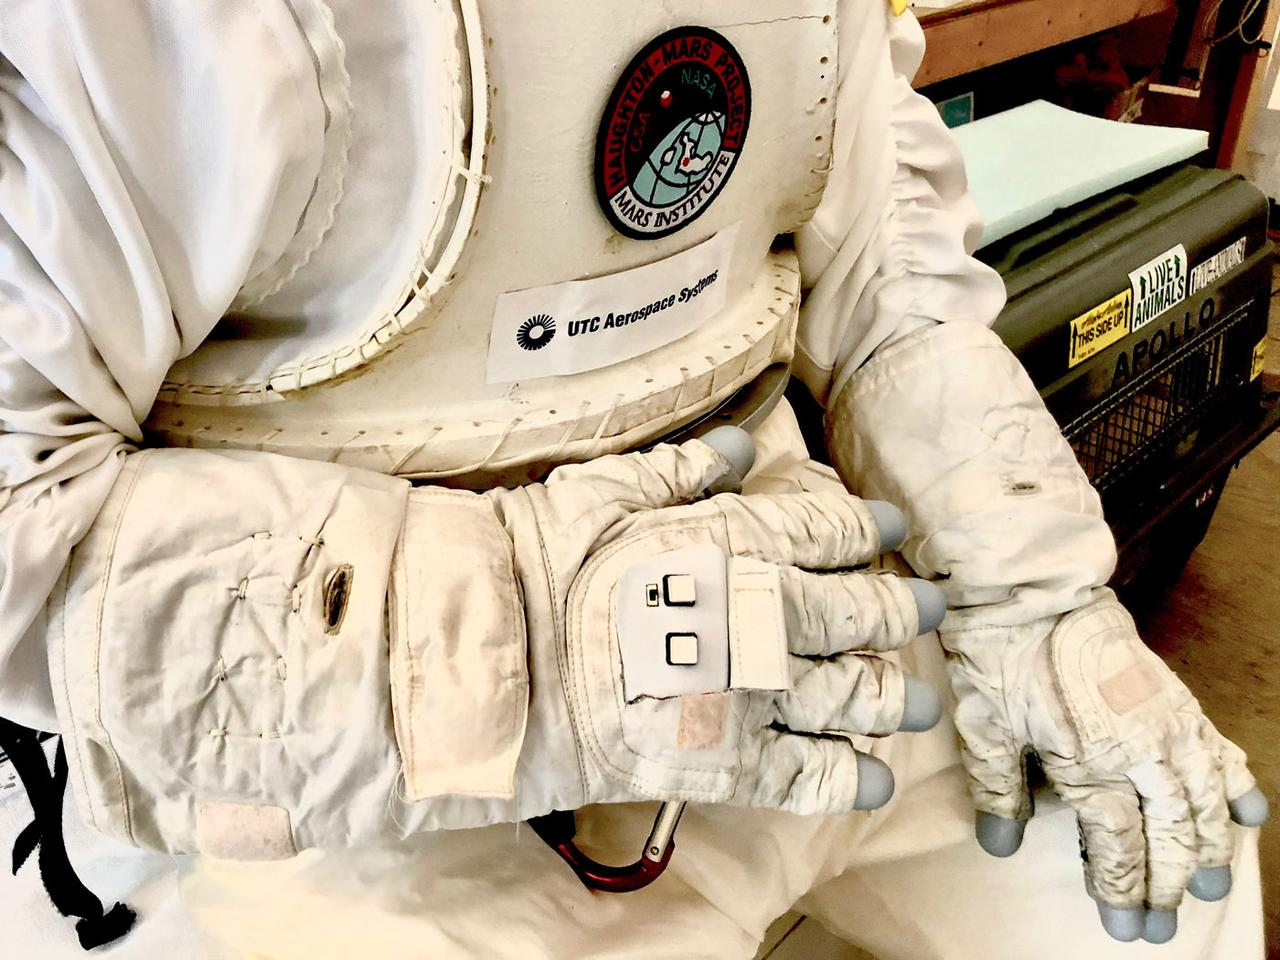 The Astronaut Smart Glove, integrated into a concept spacesuit aimed at the exploration of the Moon and Mars